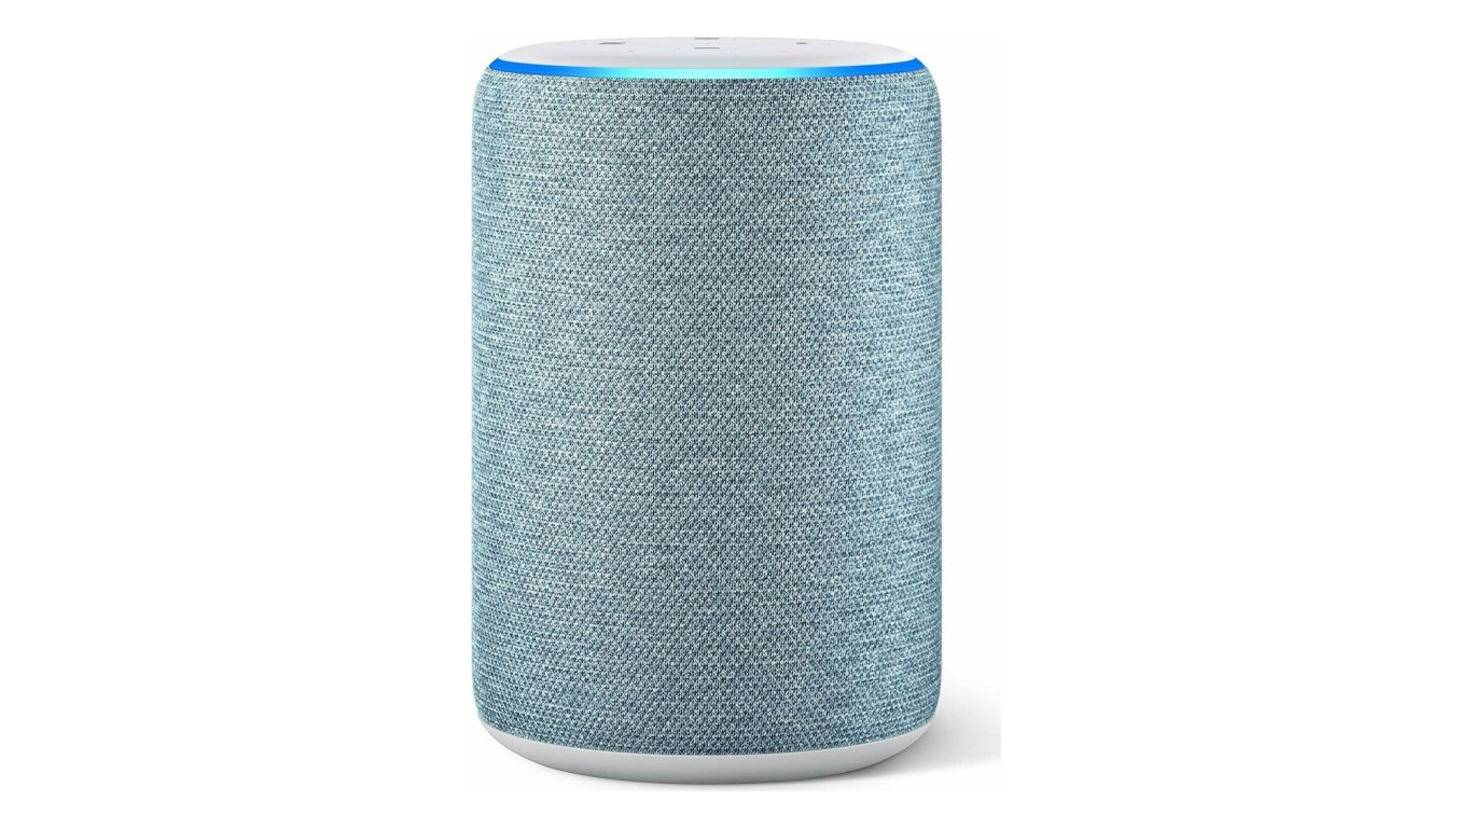 amazon-echo-3-generation-smart-speaker